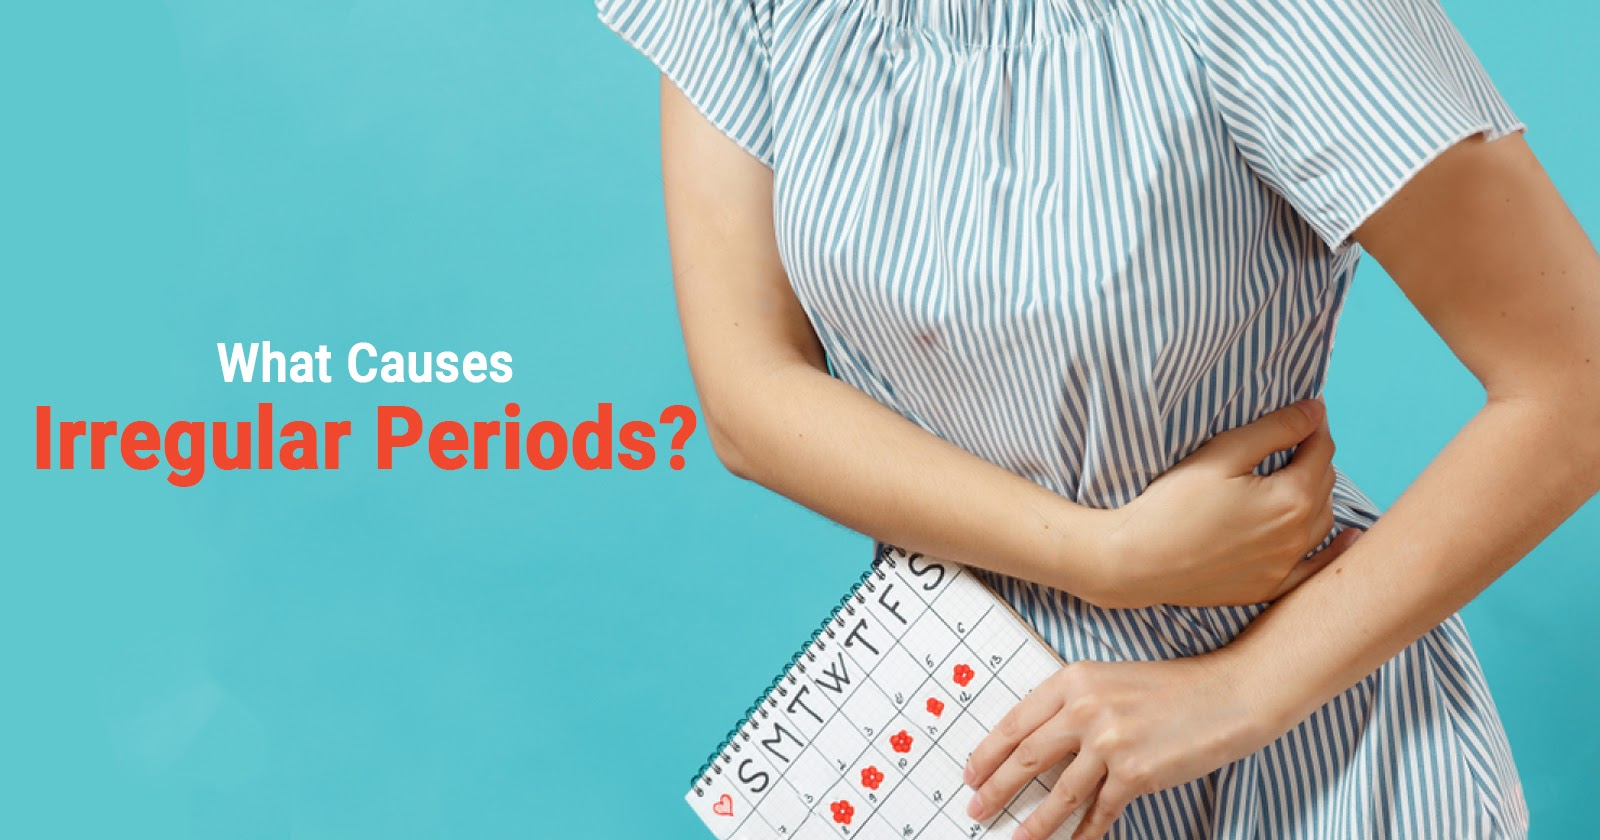 WHAT CAUSES IRREGULAR PERIODS?